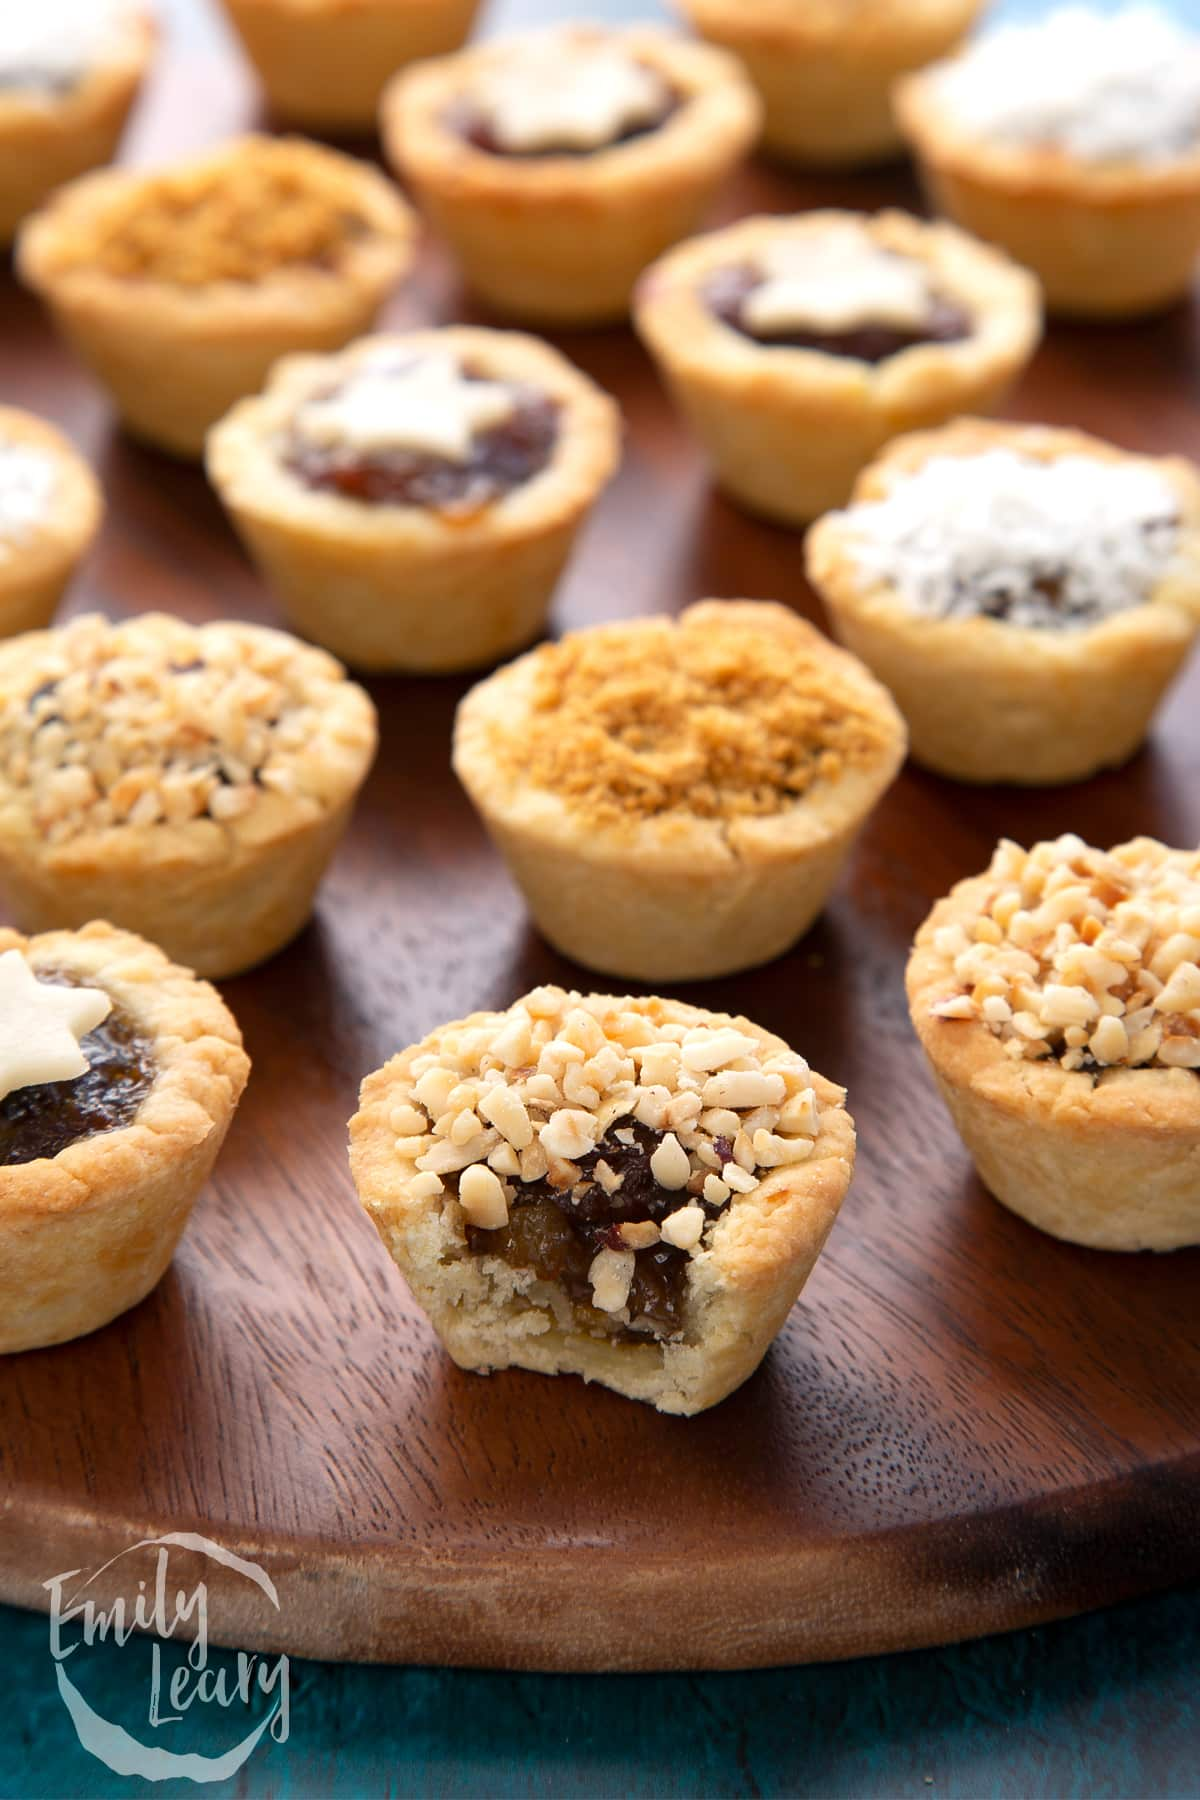 A chopped hazelnut topped mini mince pie with a bite out of it. More mini mince pies are also on the dark wooden board.